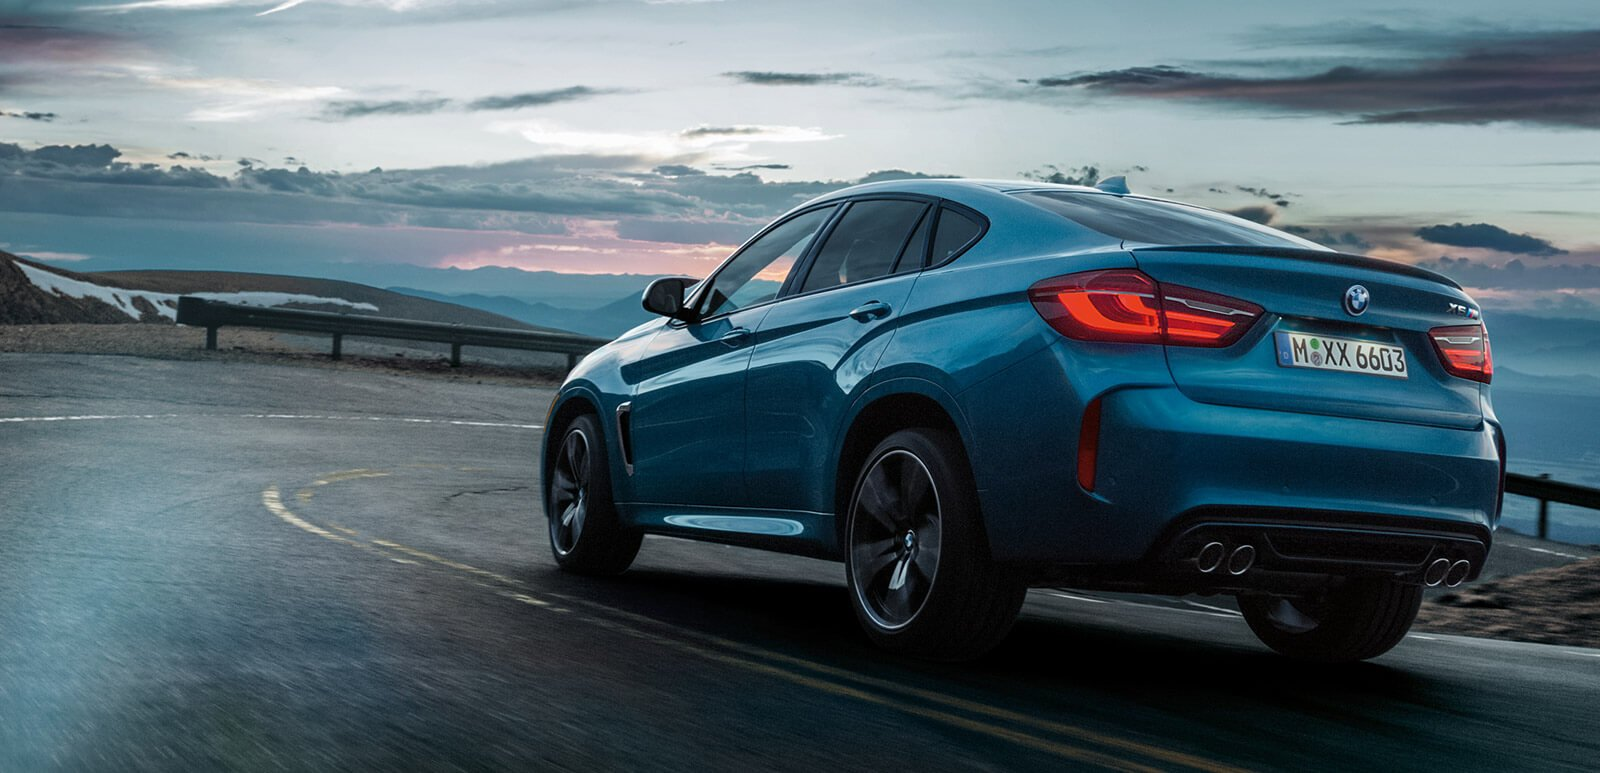 New Bmw X6 M Lease Offers Prices Atlanta Ga